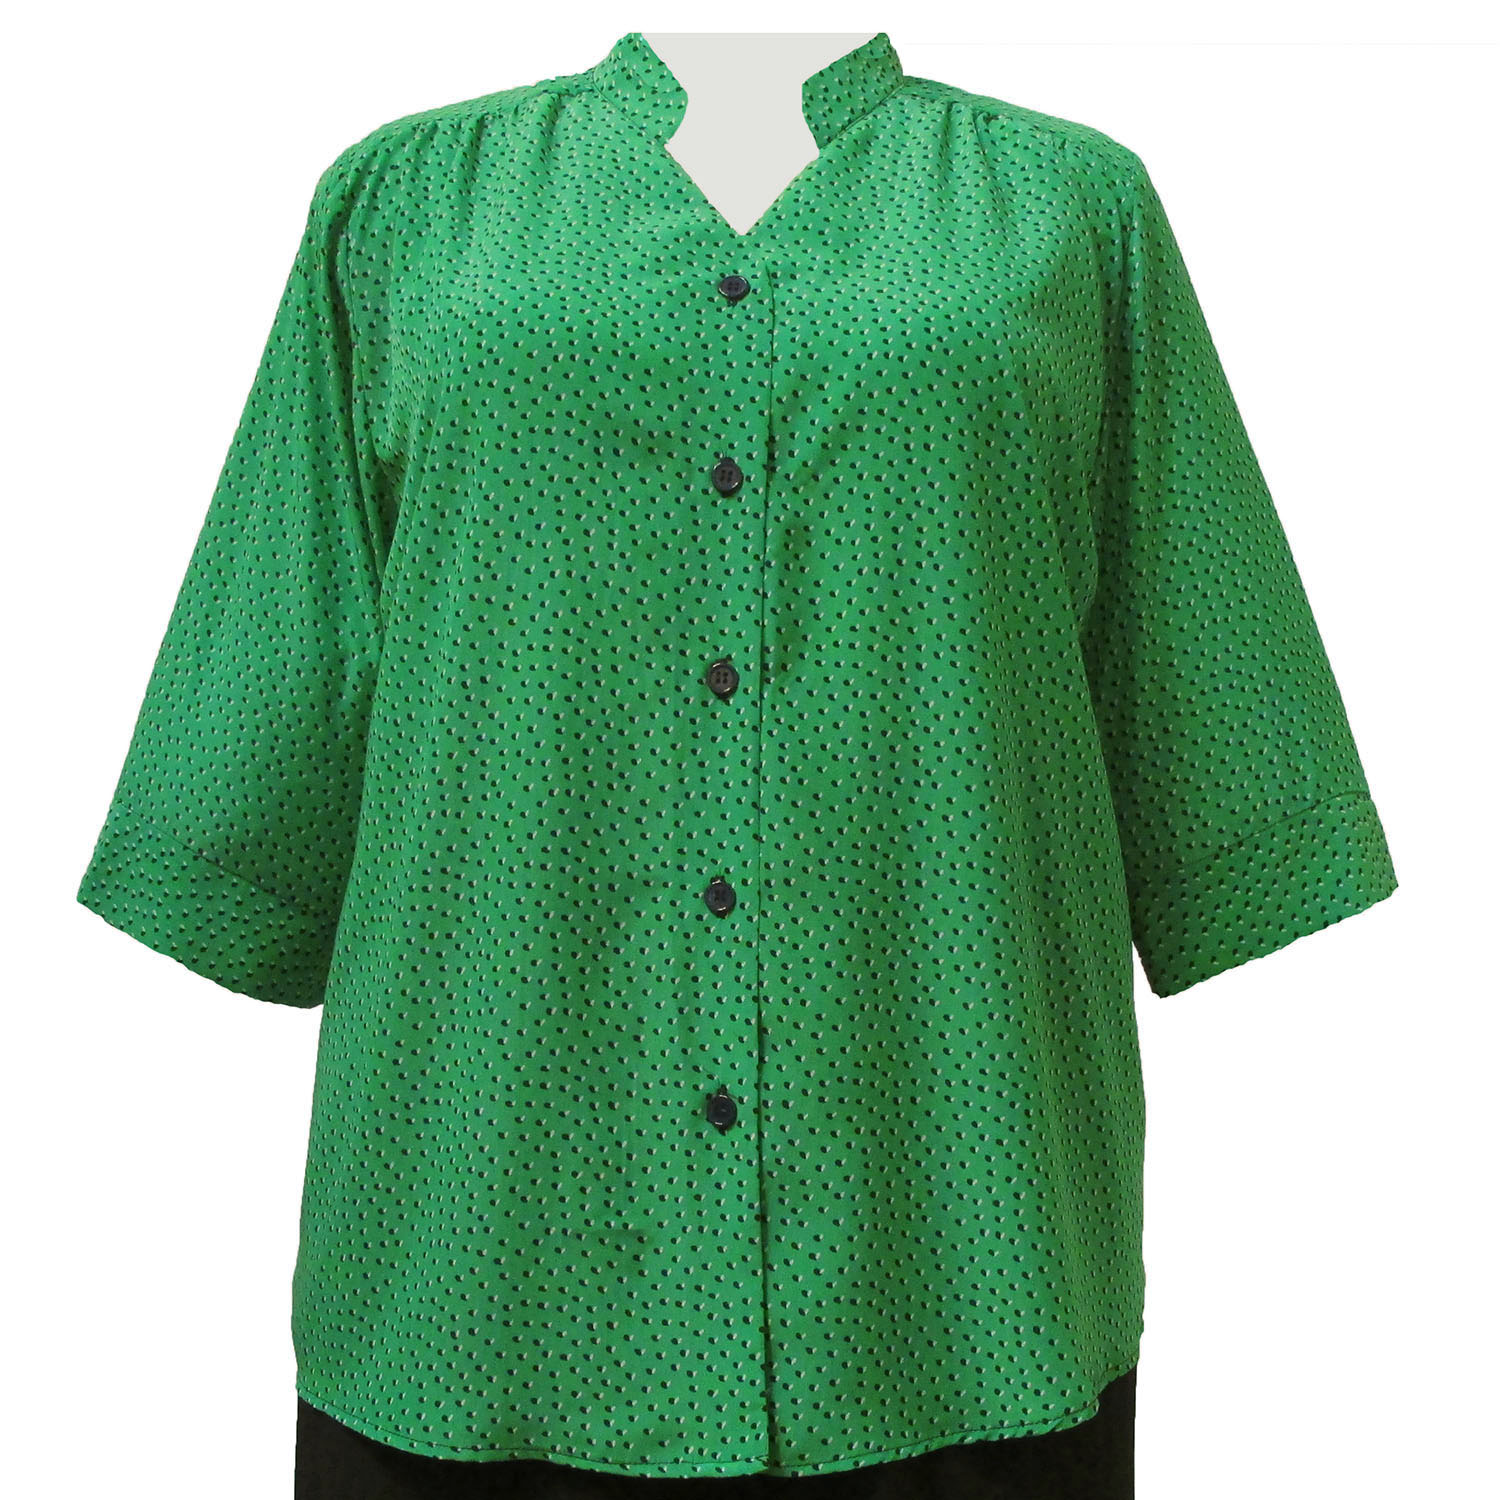 A Personal Touch Kelly Green Ditsy 3/4 Sleeve Mandarin Collar V-Neck Tunic Plus Size Woman's Blouse at Sears.com